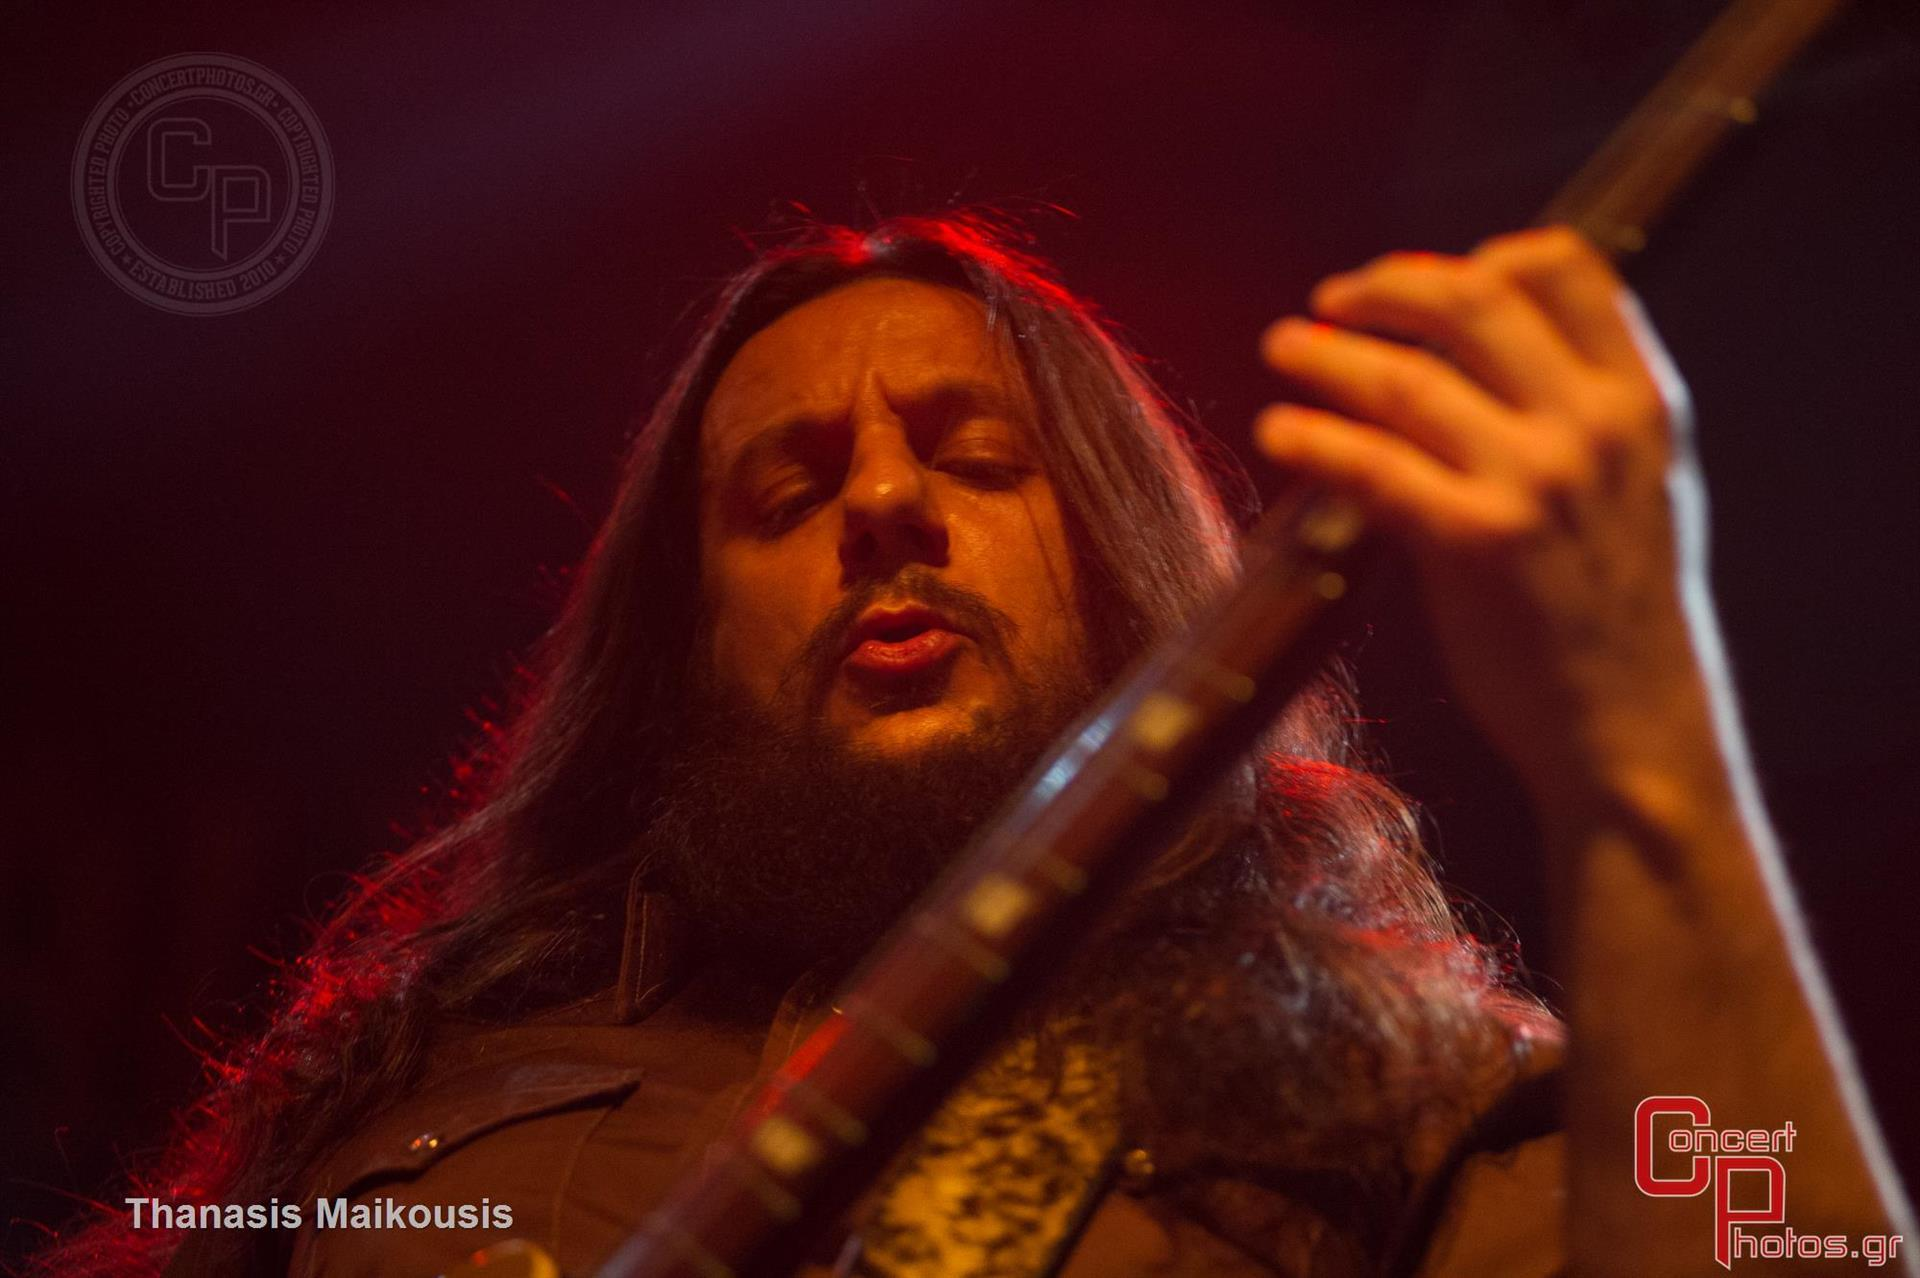 Nightstalker Three Holy Strangers-Nightstalker-Gagarin-April-2015 photographer: Thanasis Maikousis - ConcertPhotos - 20150425_2134_38